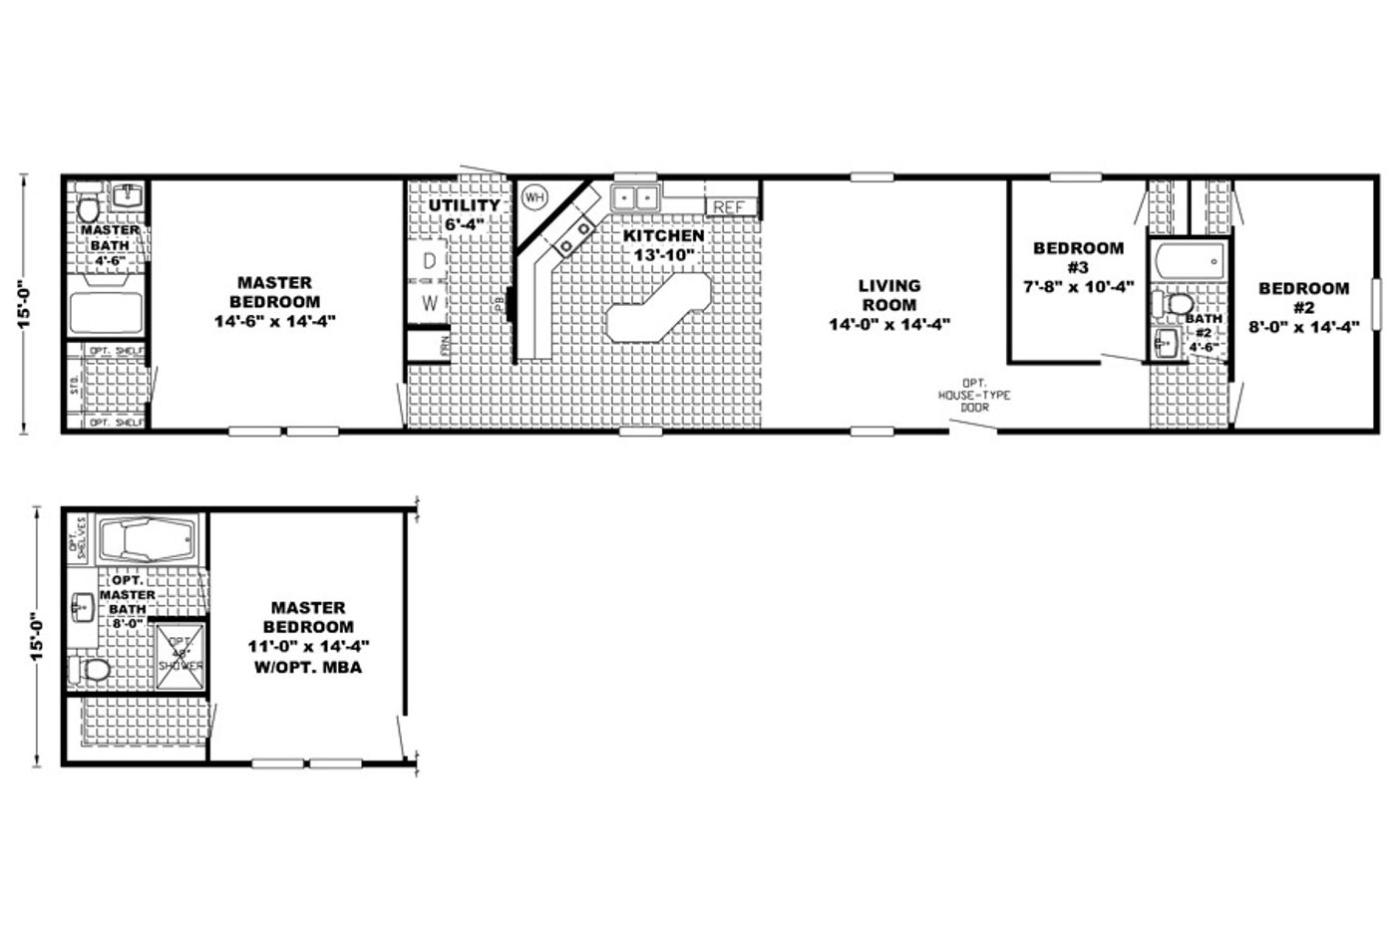 Floorplan of the Z-Bar Manufactured Home From Worldwide Mobile Homes in Lumberton, TX